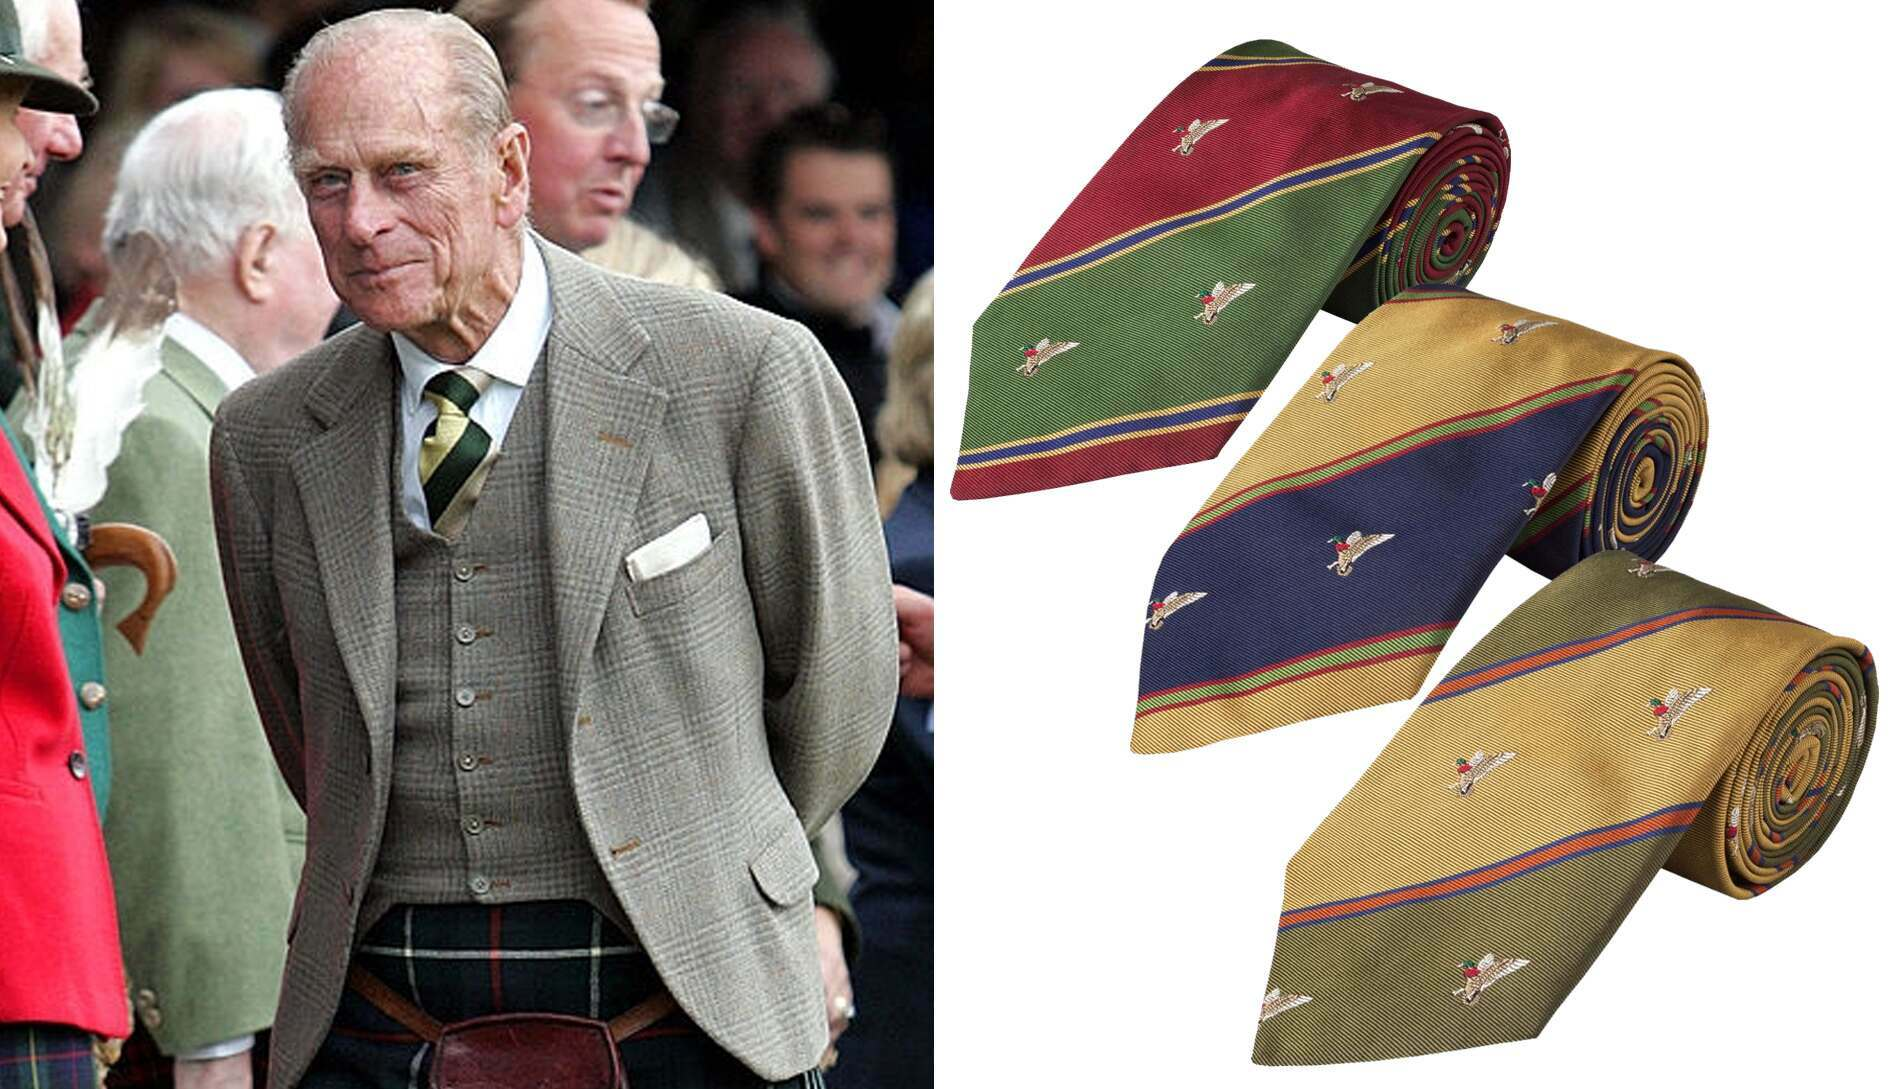 More often than not, the Duke wore a tie, and was especially fond of diagonal striped colour-block styles.